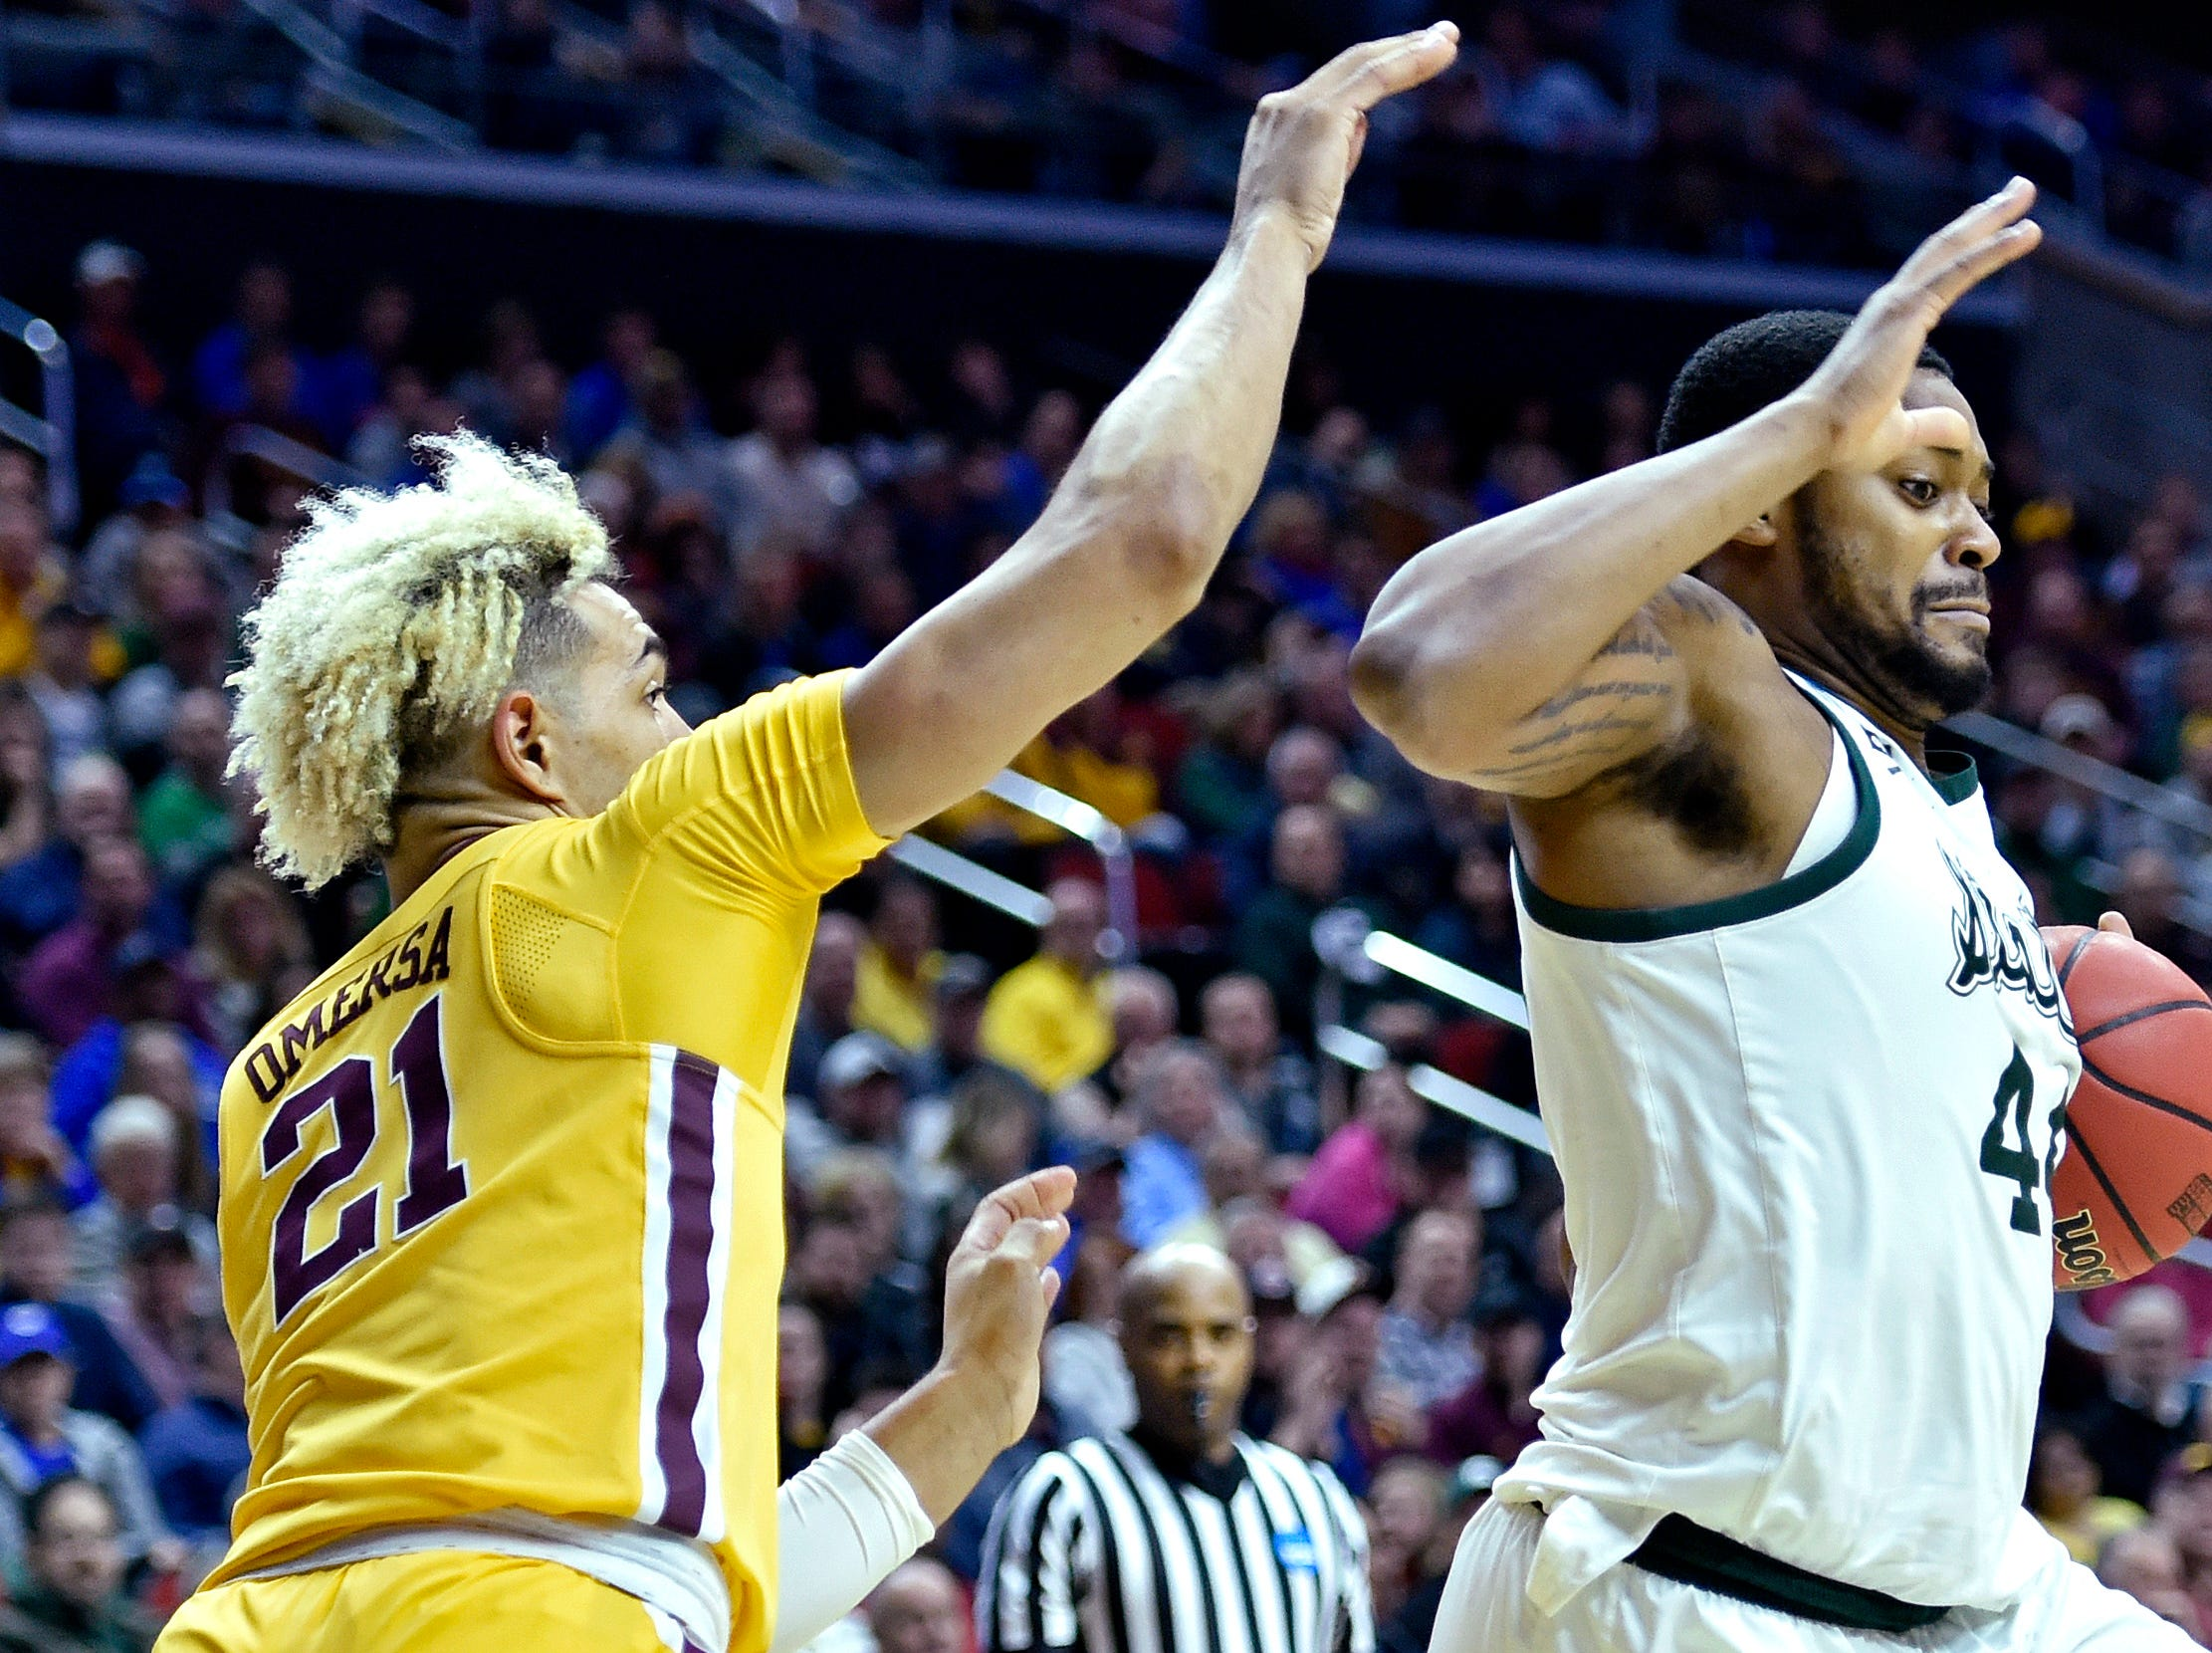 Mar 23, 2019; Des Moines, IA, United States; Michigan State Spartans forward Nick Ward (44) drives to the basket against Minnesota Golden Gophers forward Jarvis Omersa (21) during the first half in the second round of the 2019 NCAA Tournament at Wells Fargo Arena. Mandatory Credit: Jeffrey Becker-USA TODAY Sports